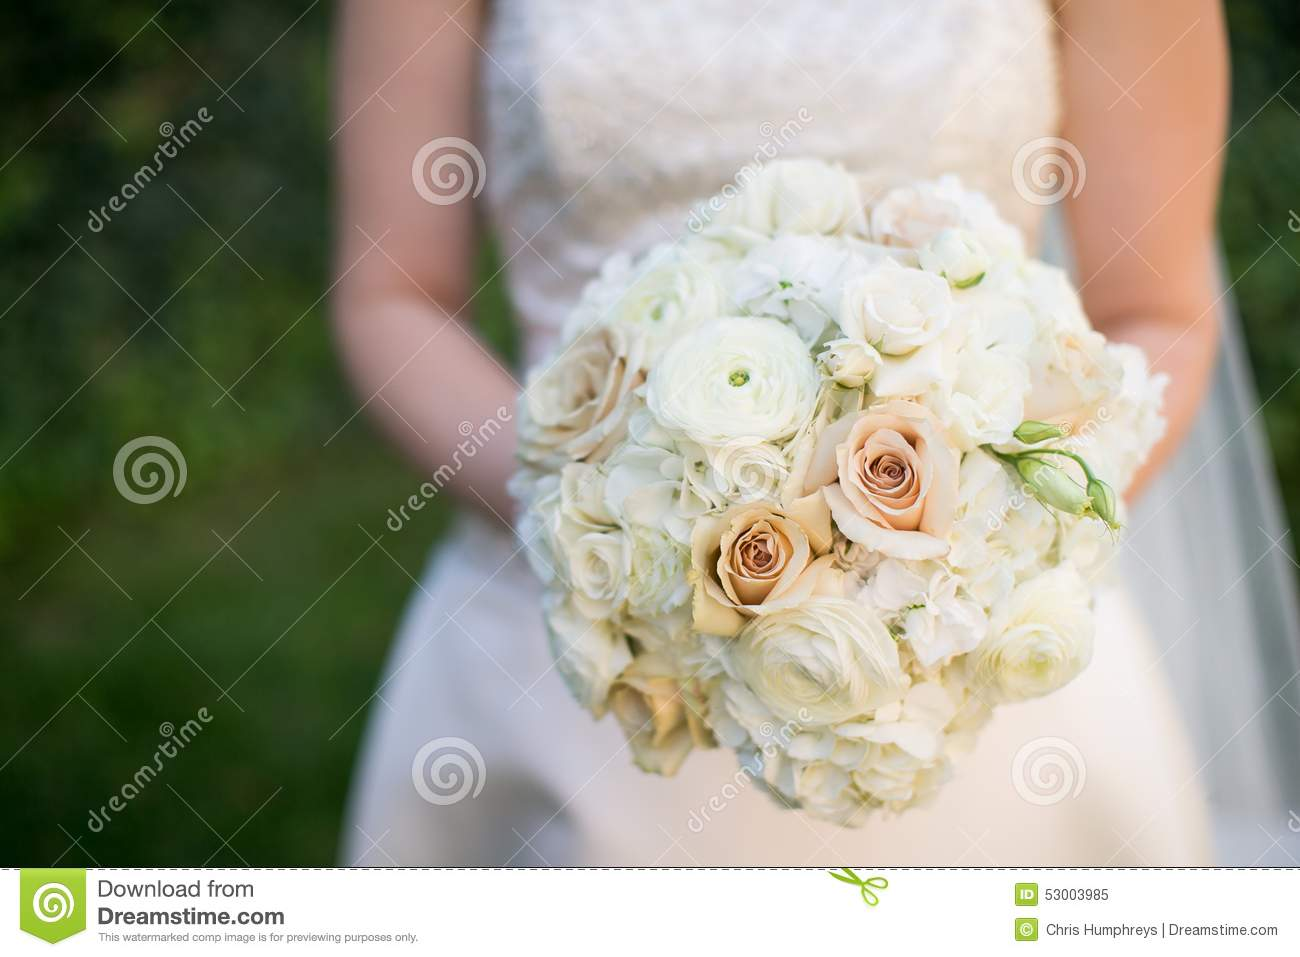 Bride holding wedding bouquet of pink and white flowers stock image bride holding wedding bouquet of pink and white flowers izmirmasajfo